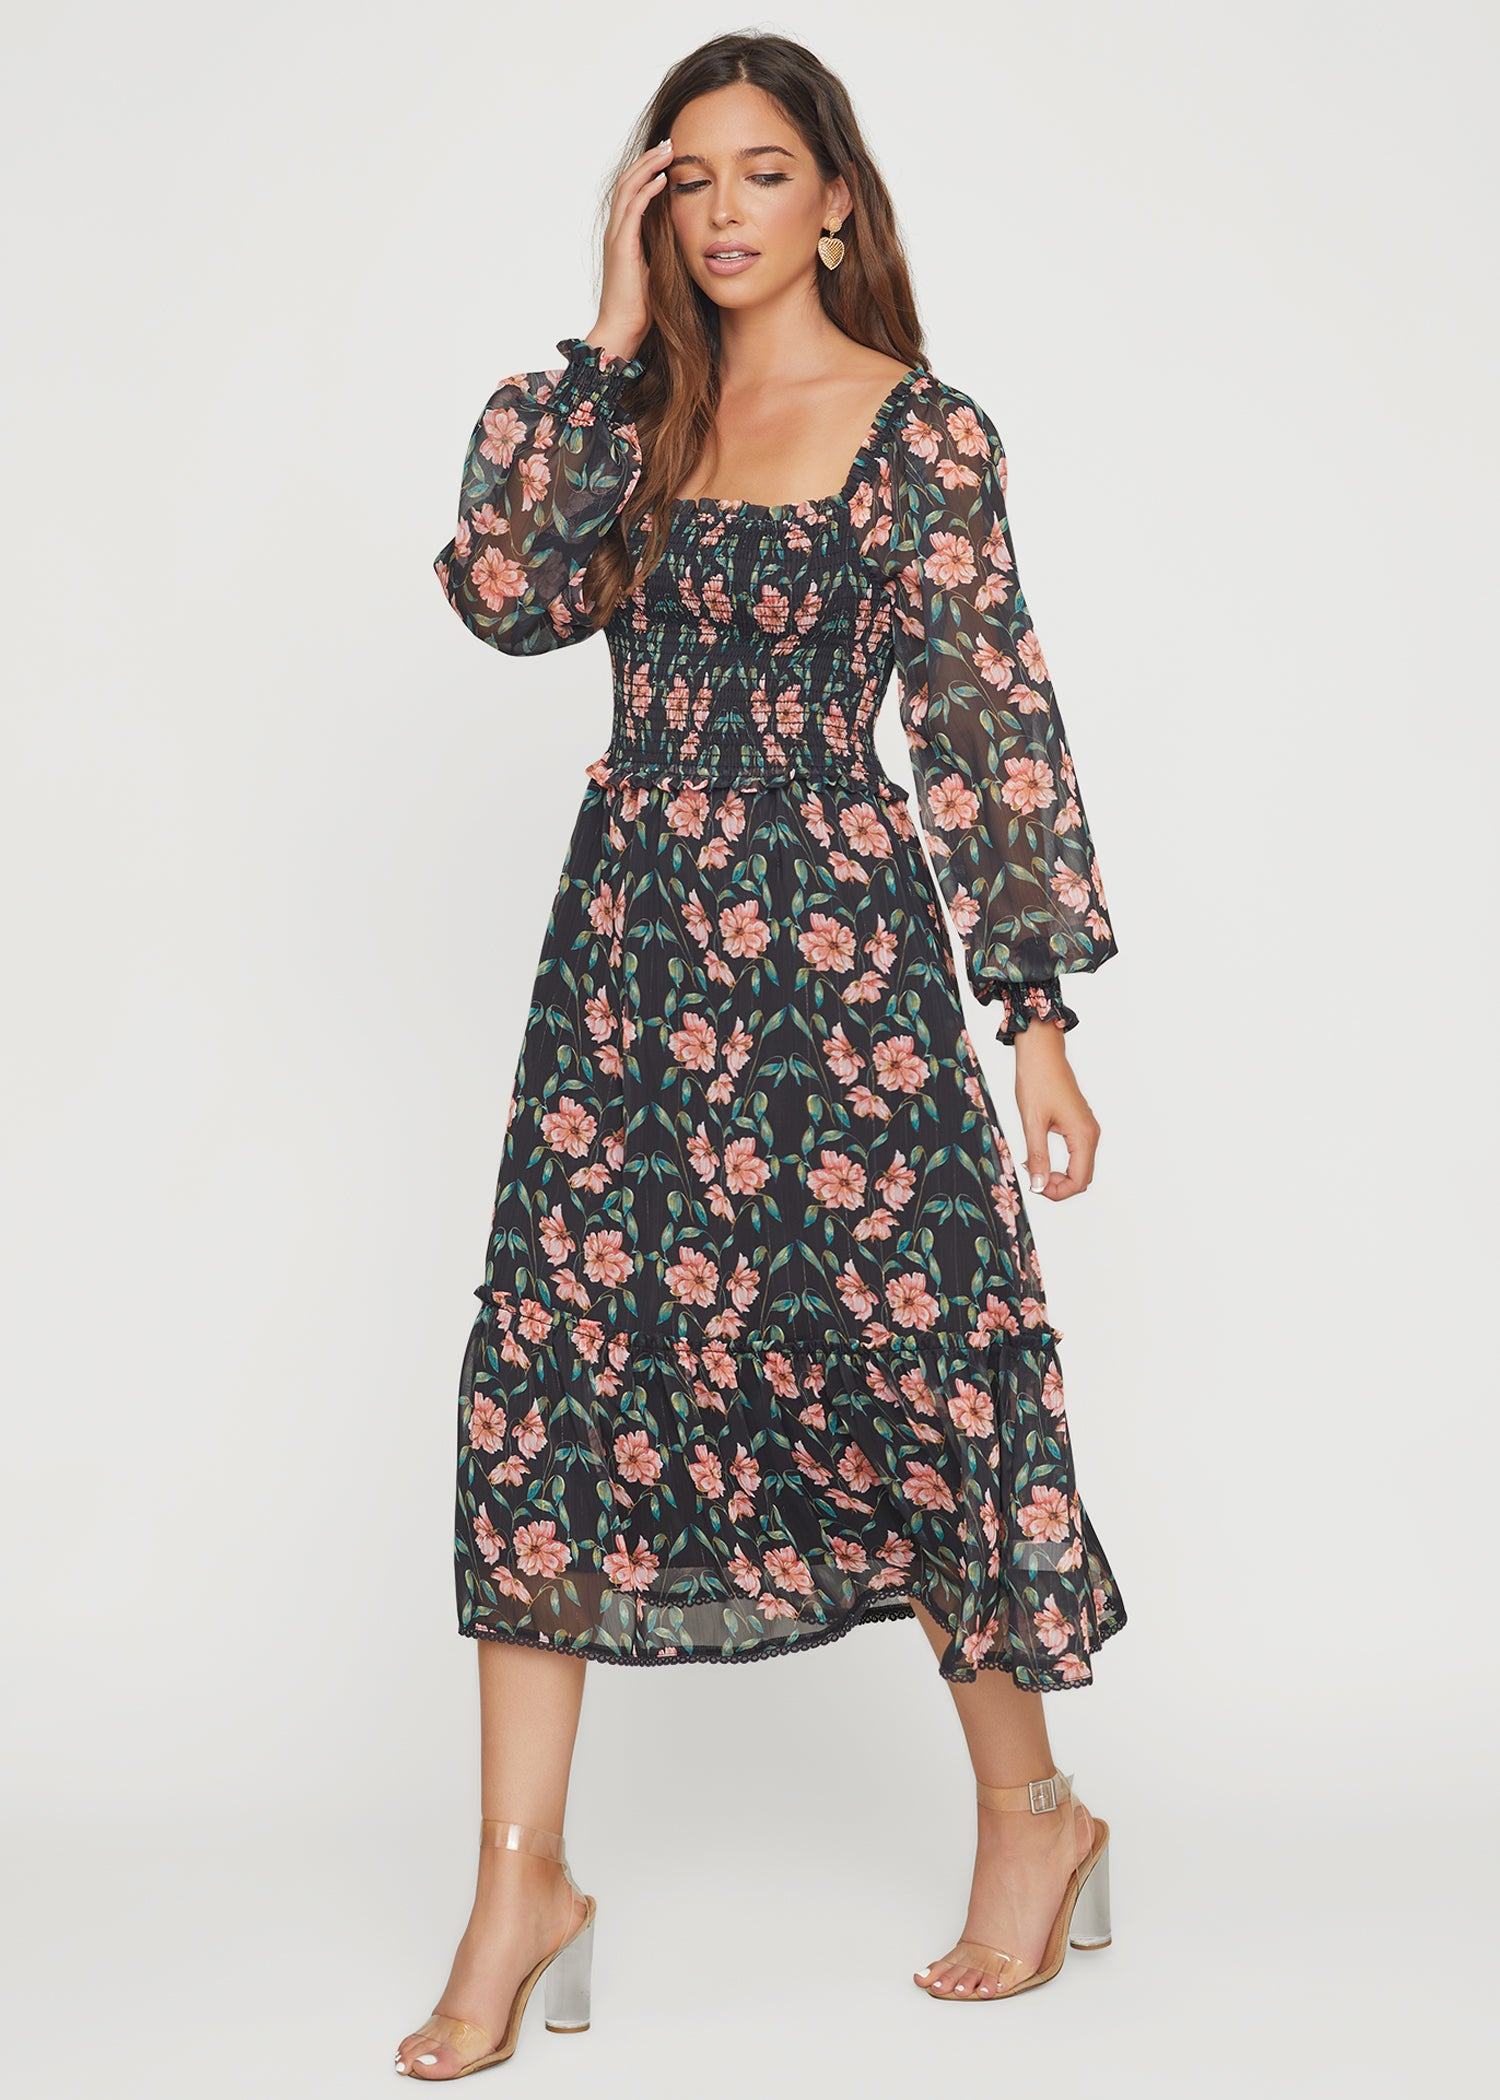 Chasing The Sun Smocked Maxi Dress